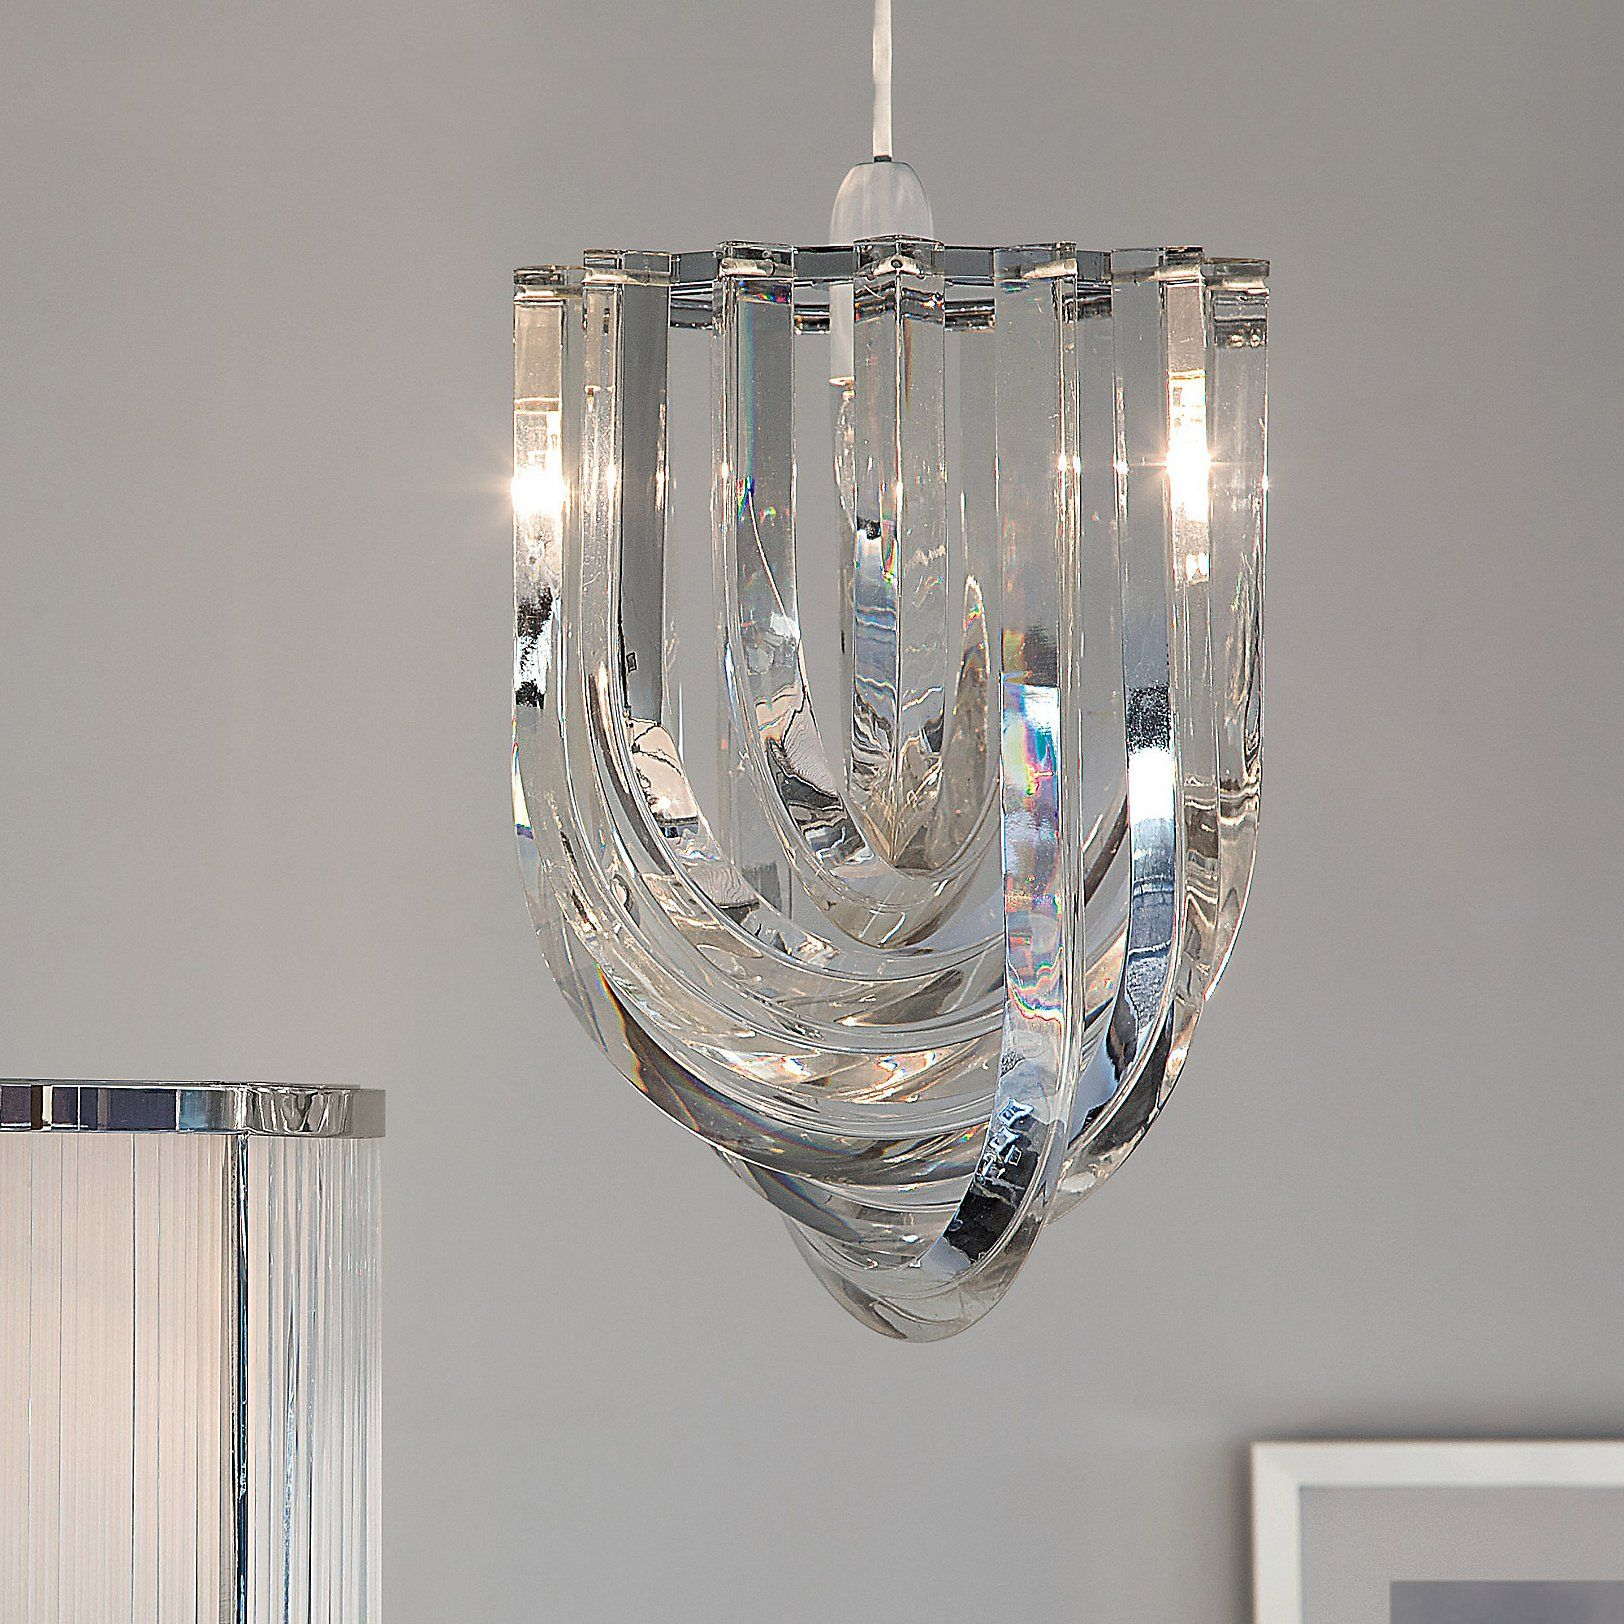 Deco Chandelier Light Shade | White company, Chandeliers and Ceiling ...